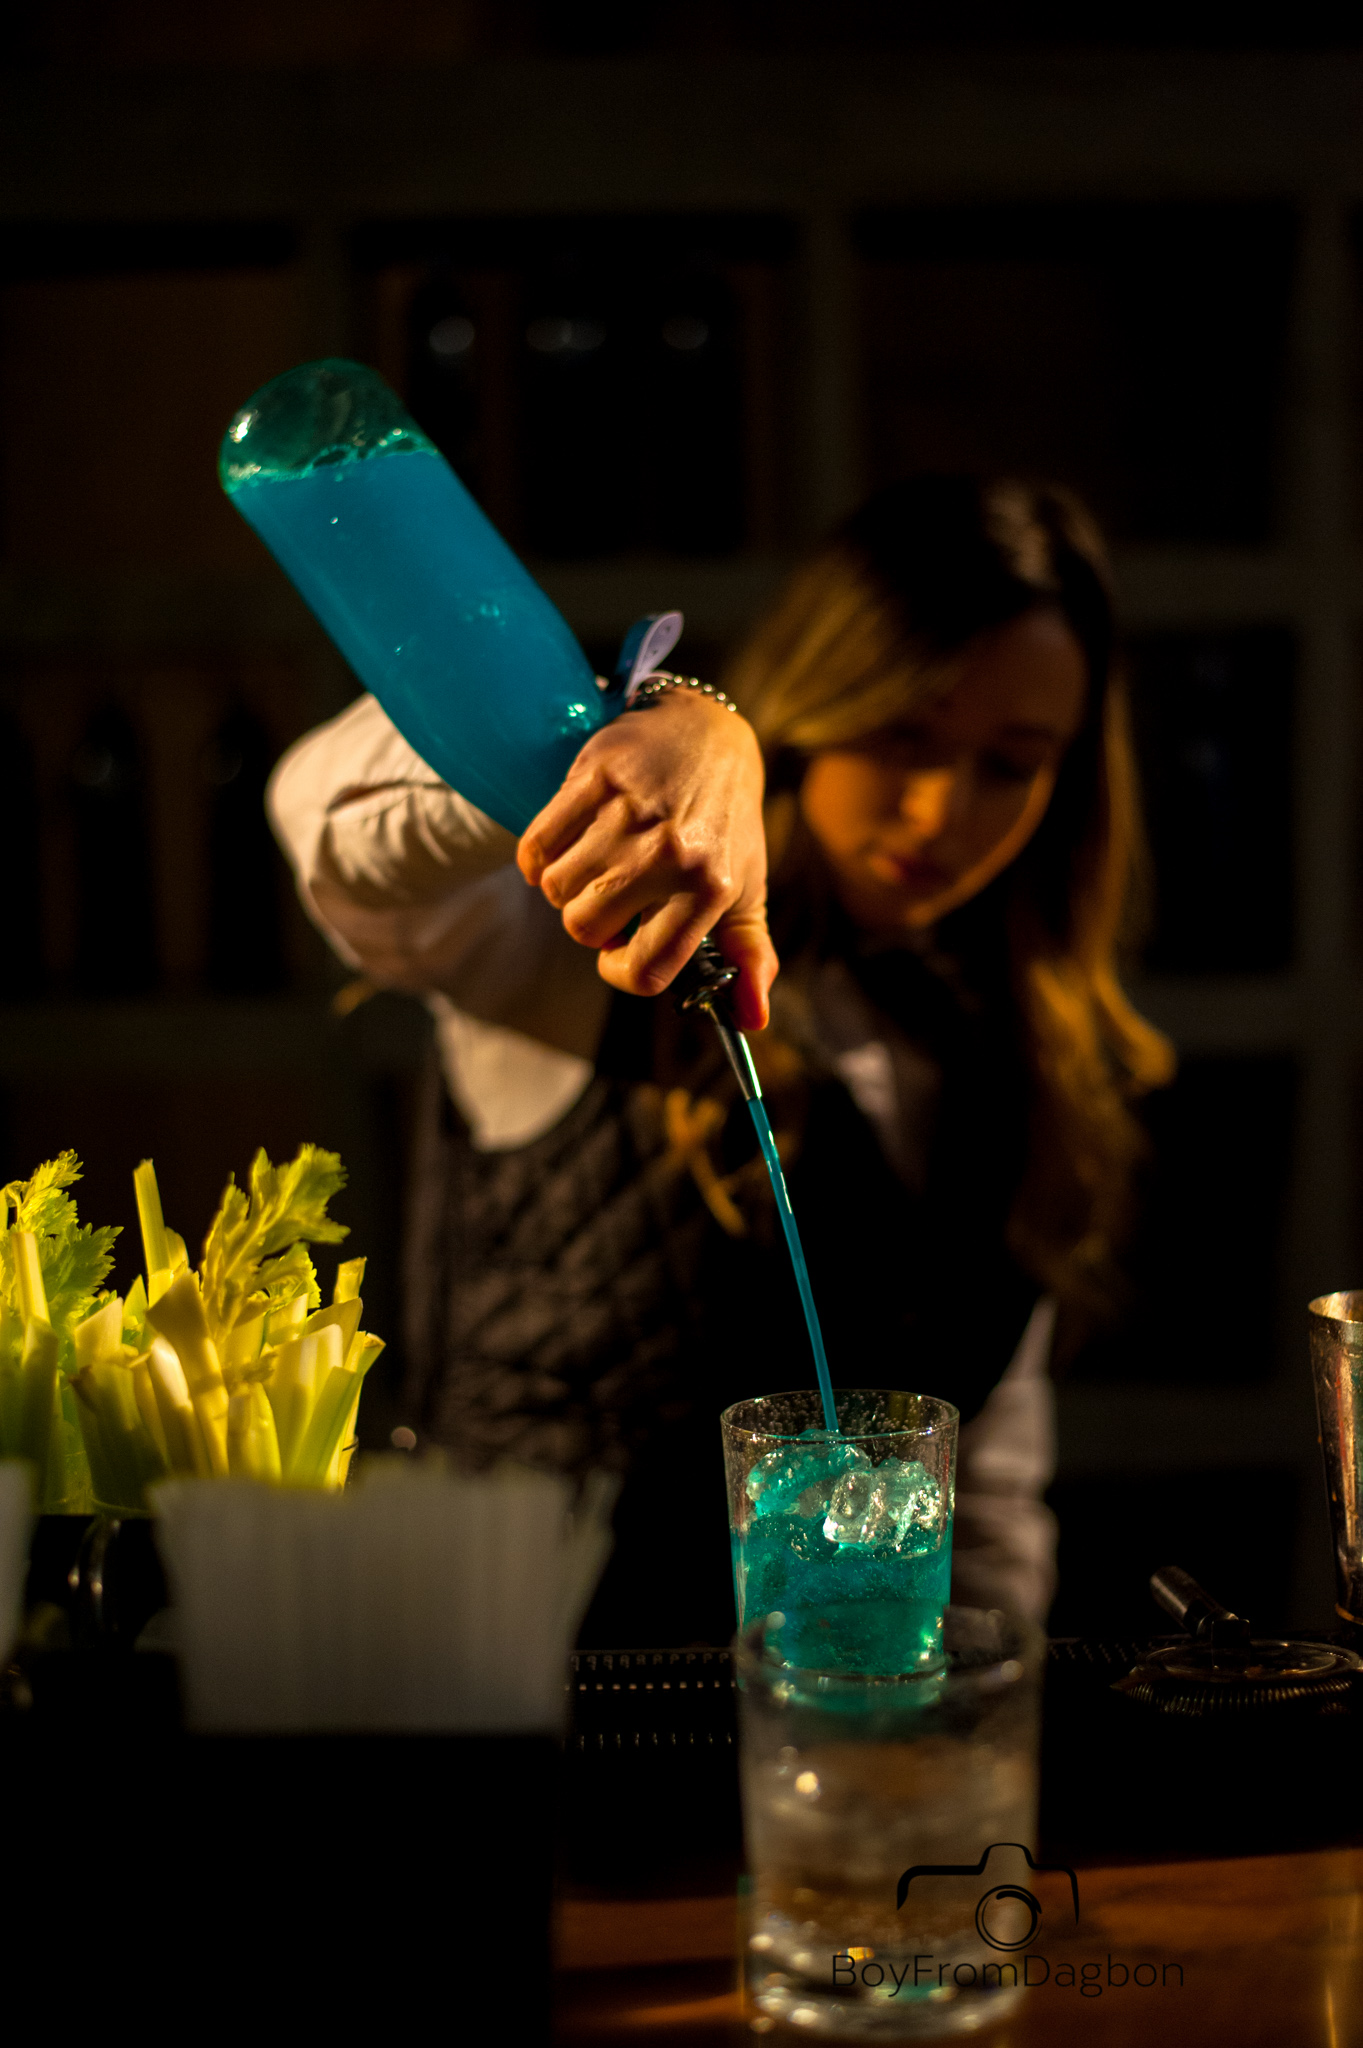 SPRING COCKTAILS TO TRY AT HOME